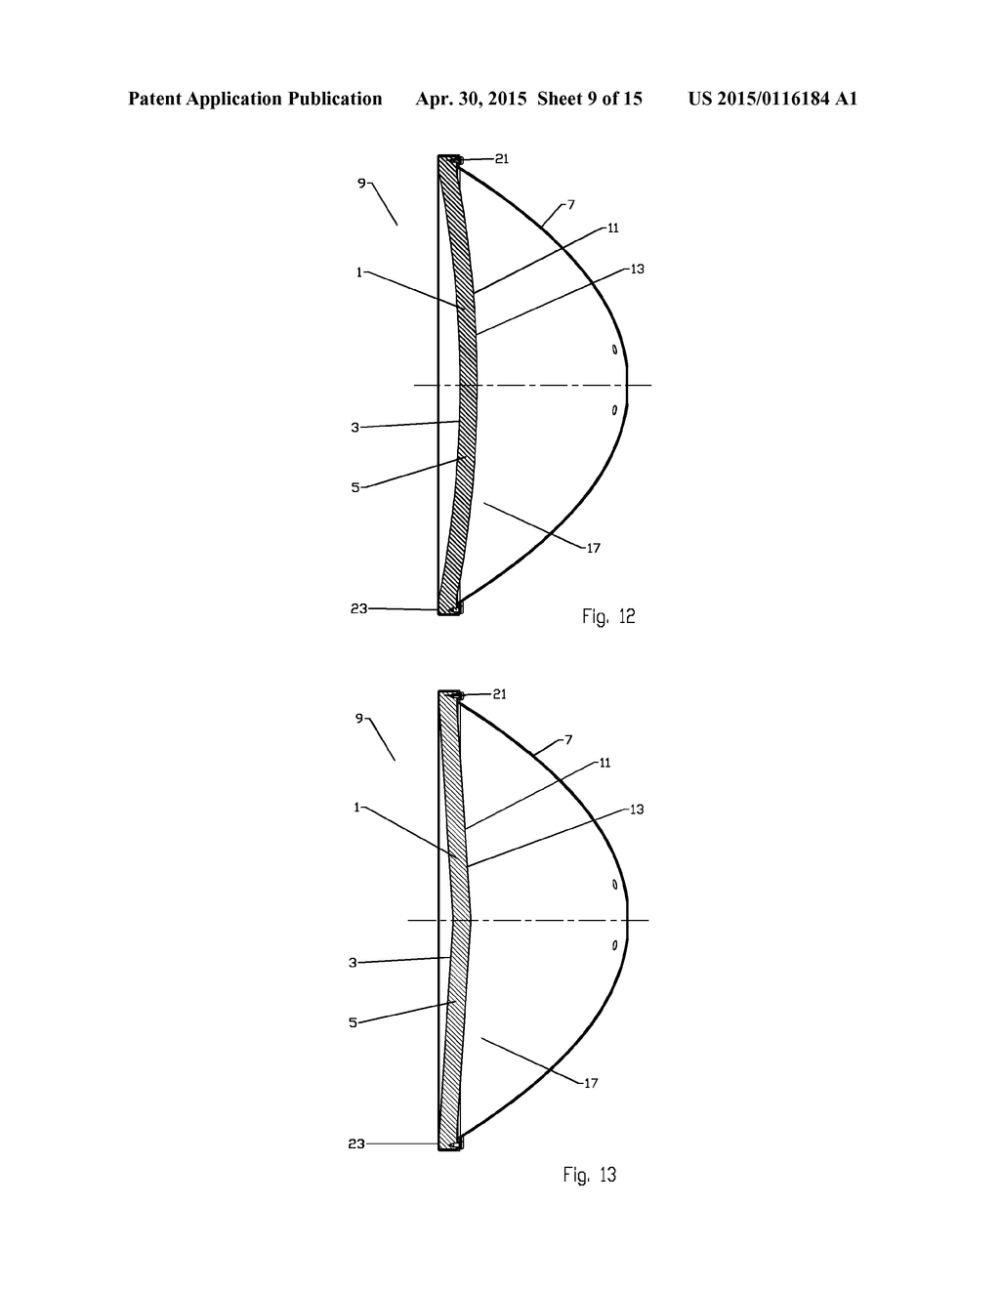 medium resolution of broad band radome for microwave antenna diagram schematic and image 10